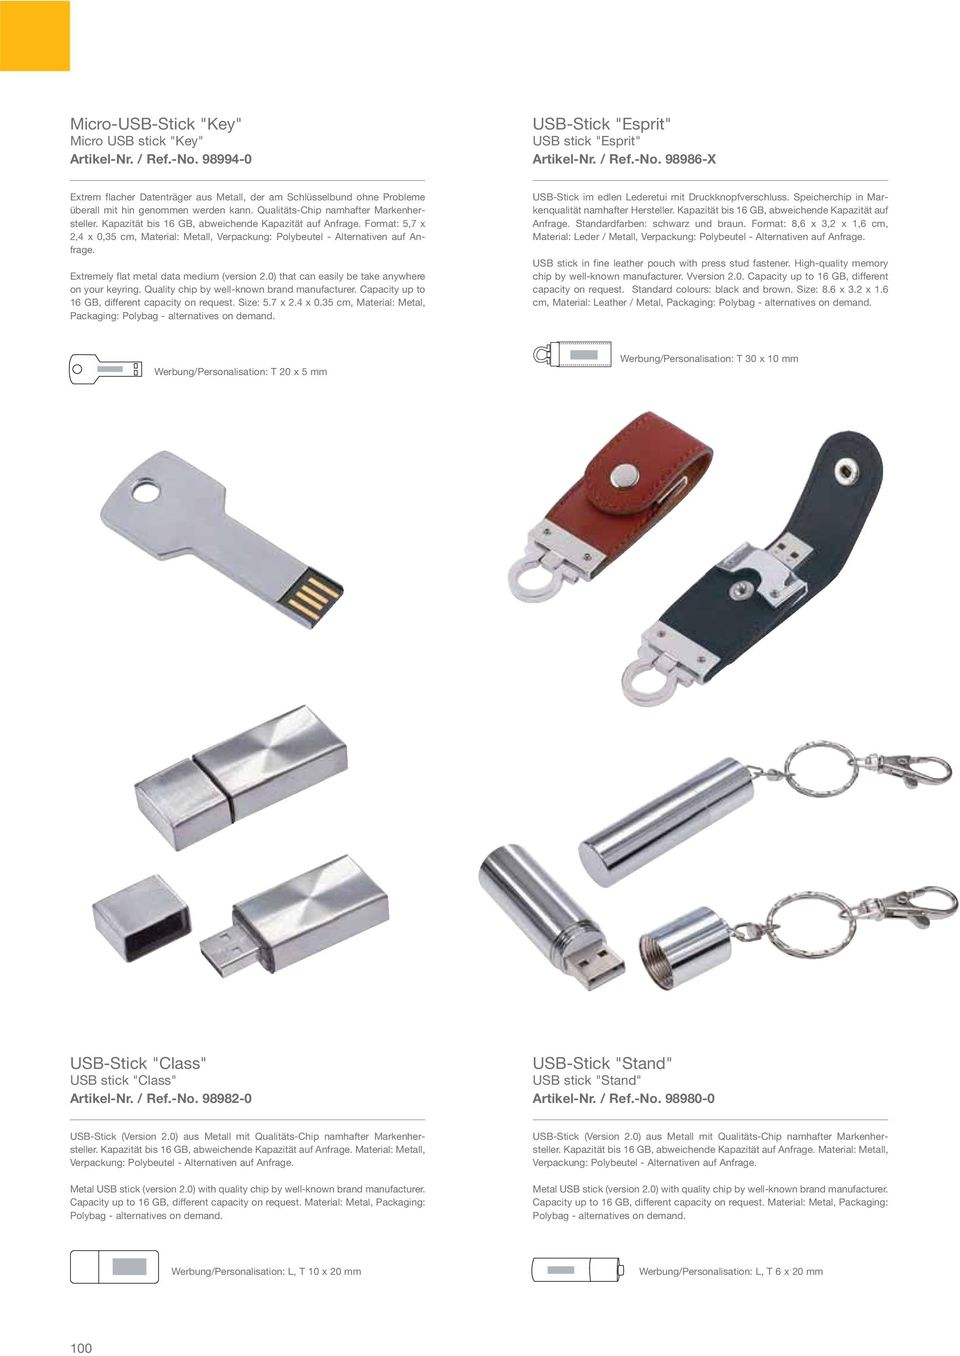 Extremely flat metal data medium (version 2.0) that can easily be take anywhere on your keyring. Quality chip by well-known brand manufacturer. Capacity up to 16 GB, different capacity on request.